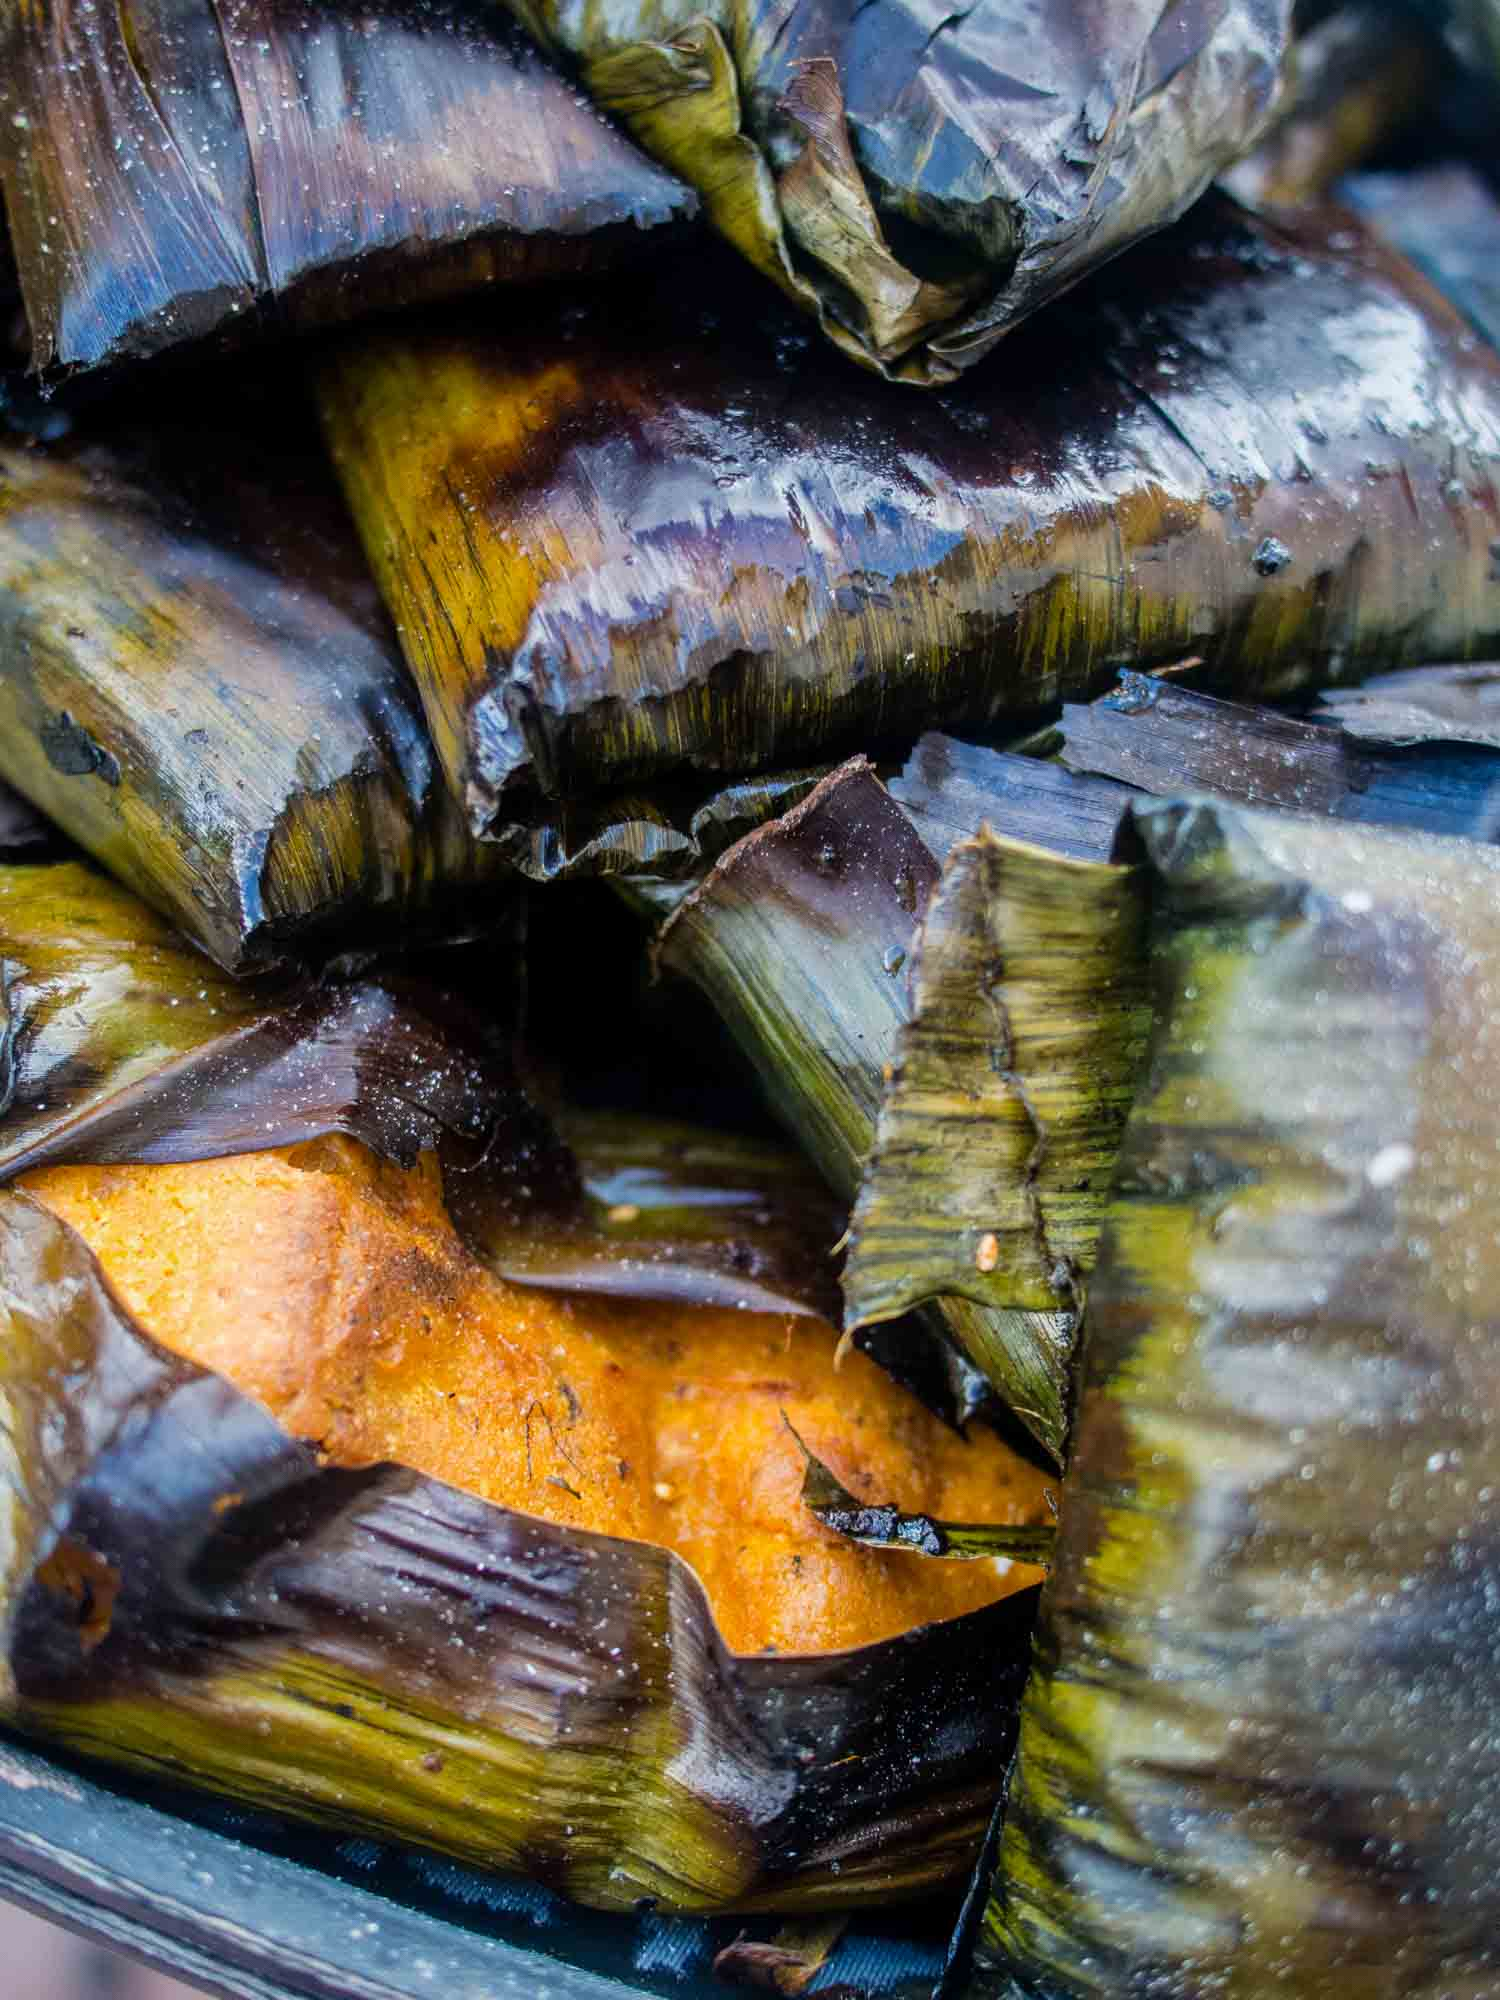 Panama food: tamales are a typical traditional food in Panama and can have many fillings,